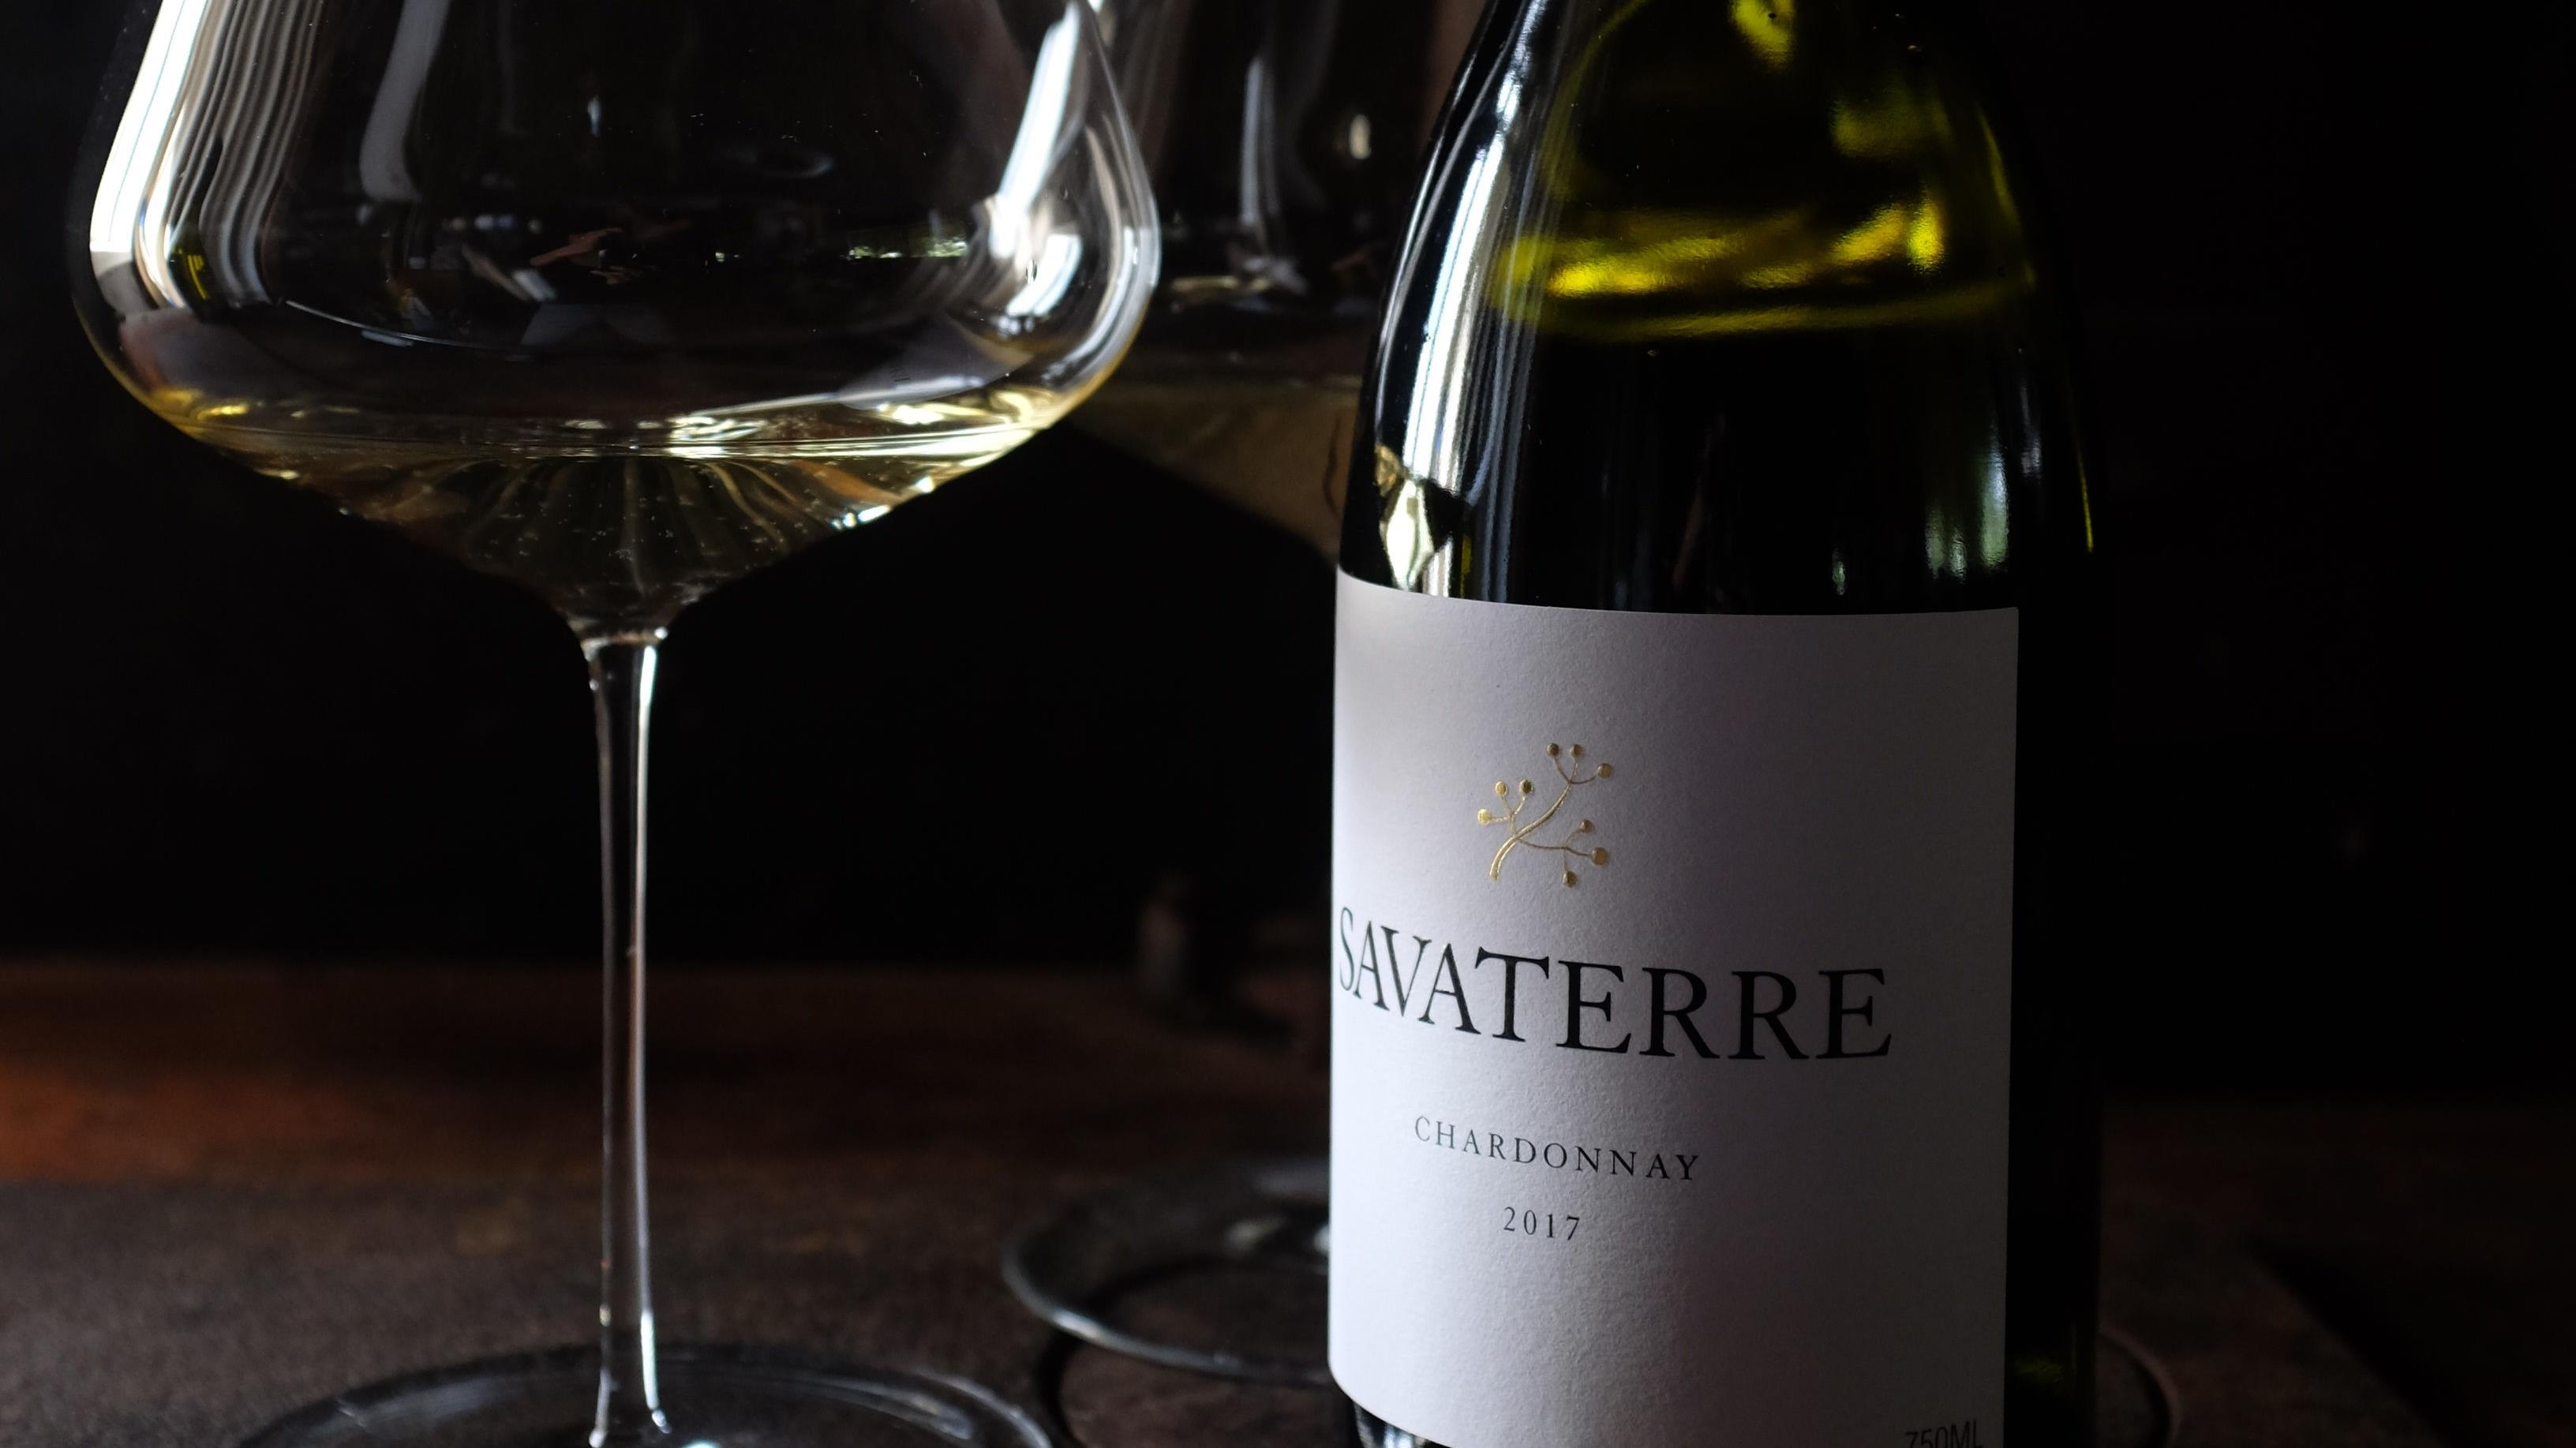 Savaterre 2017 Chardonnay - 97 Points